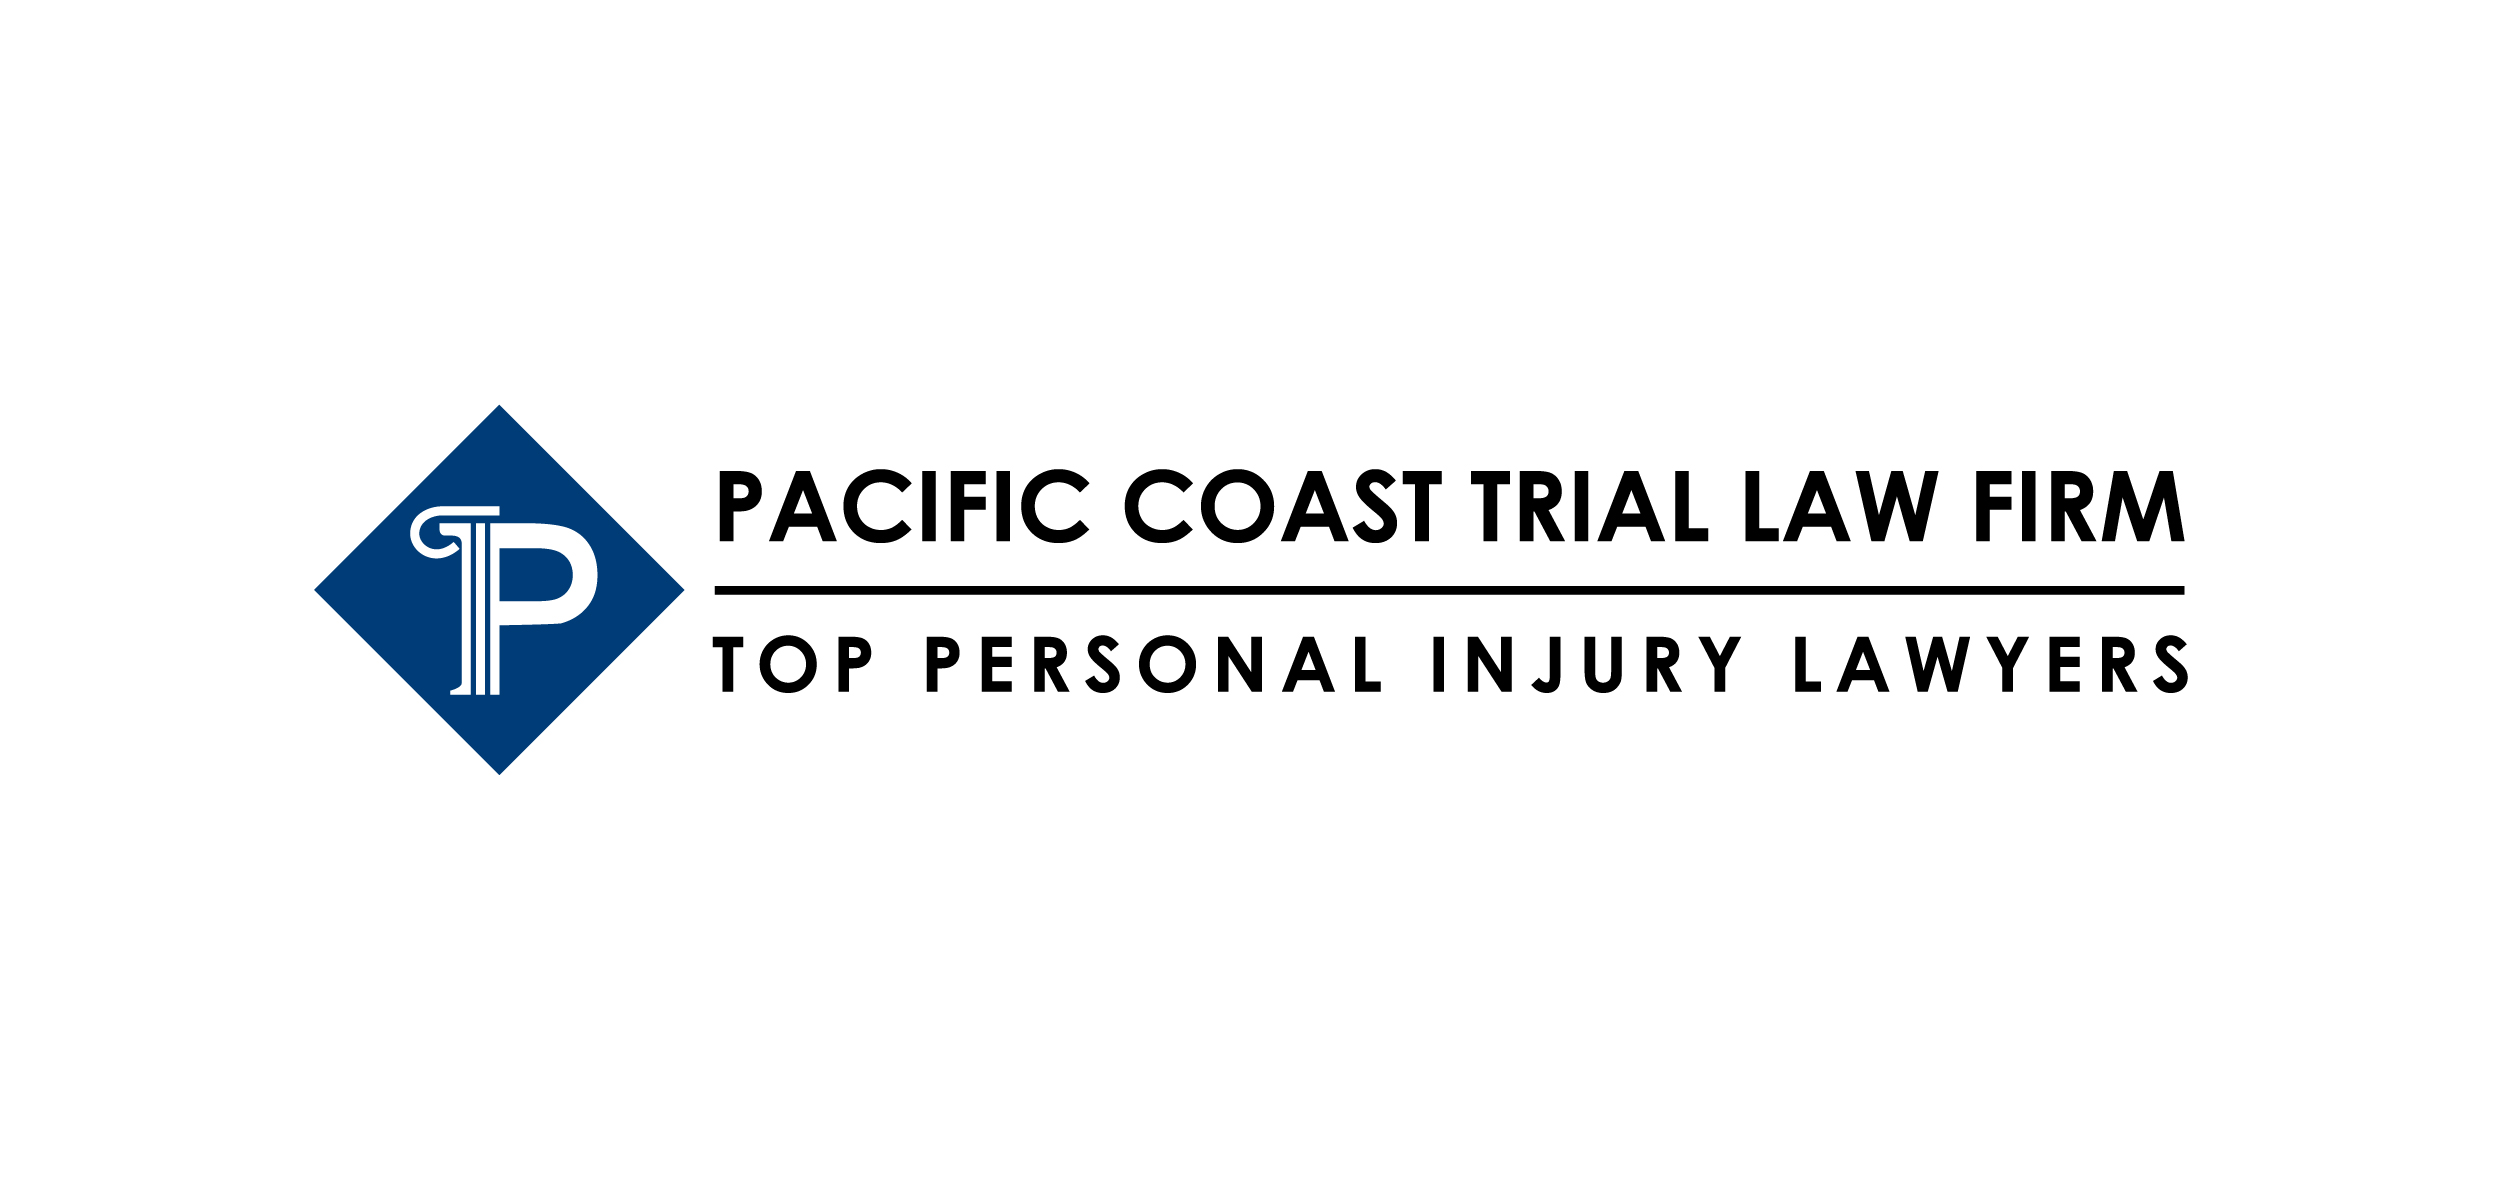 pacific-coast-trial-law-firm_ff-01.jpg